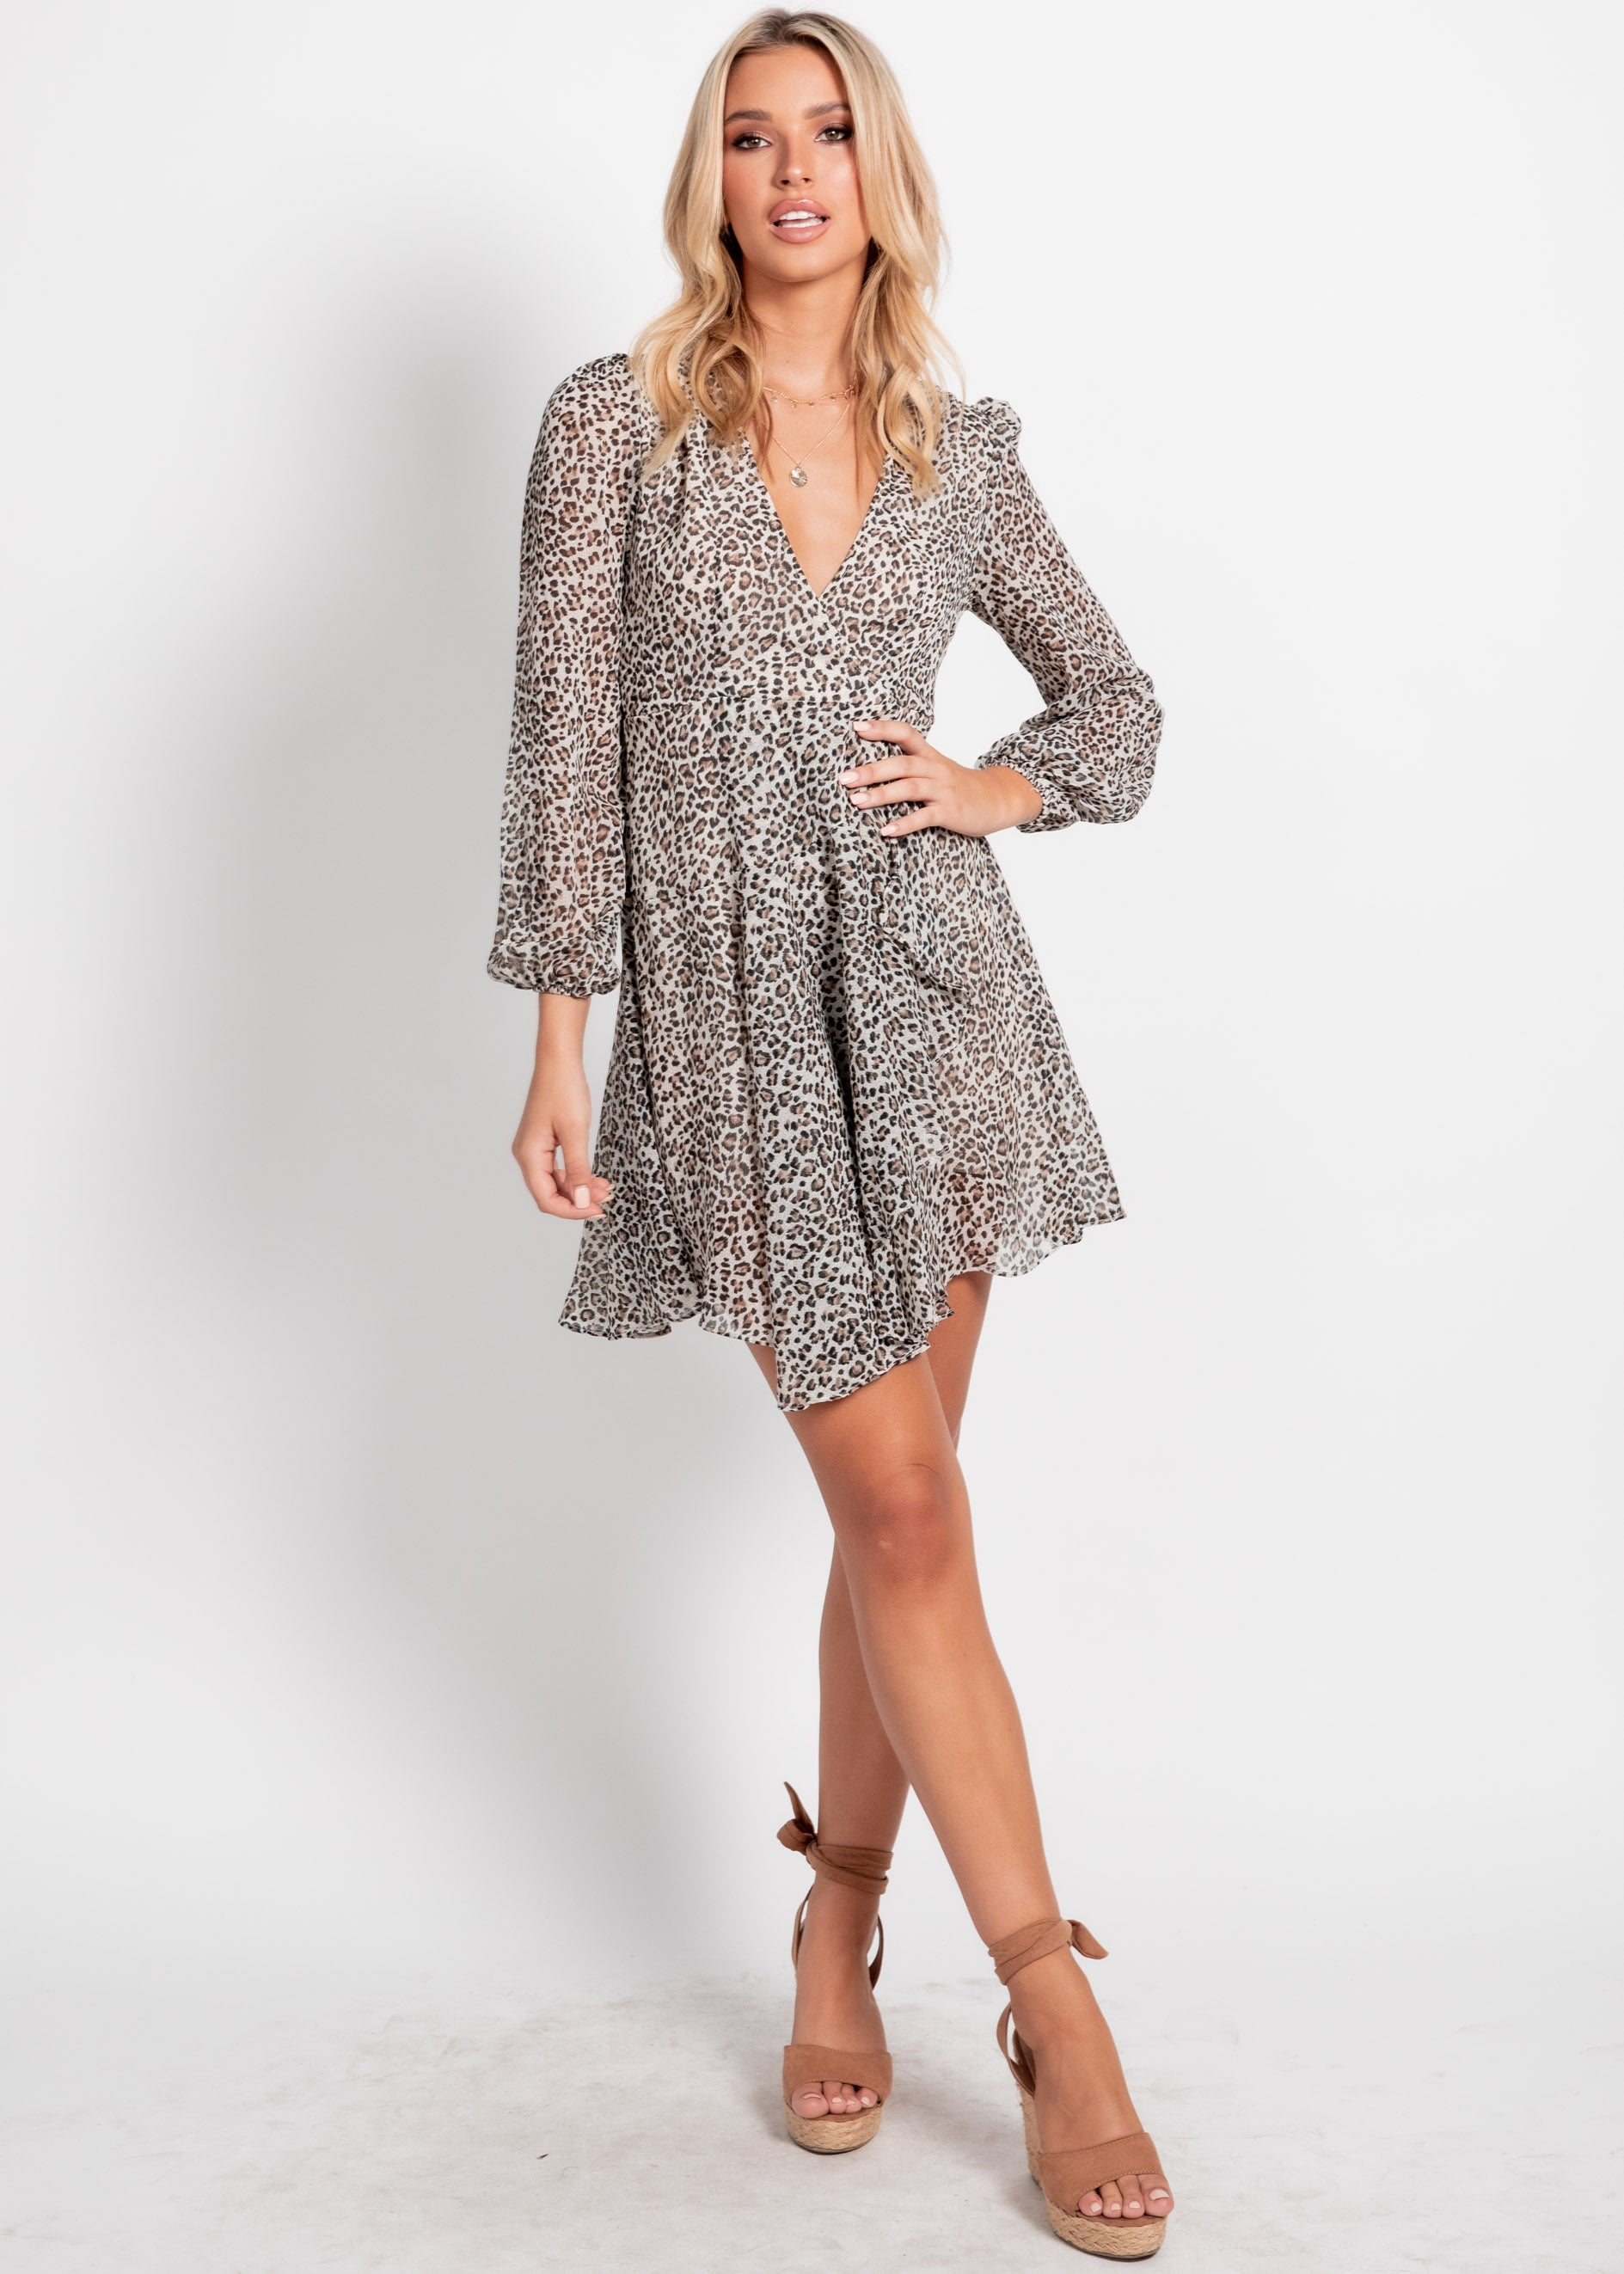 Sansa Dress - Leopard